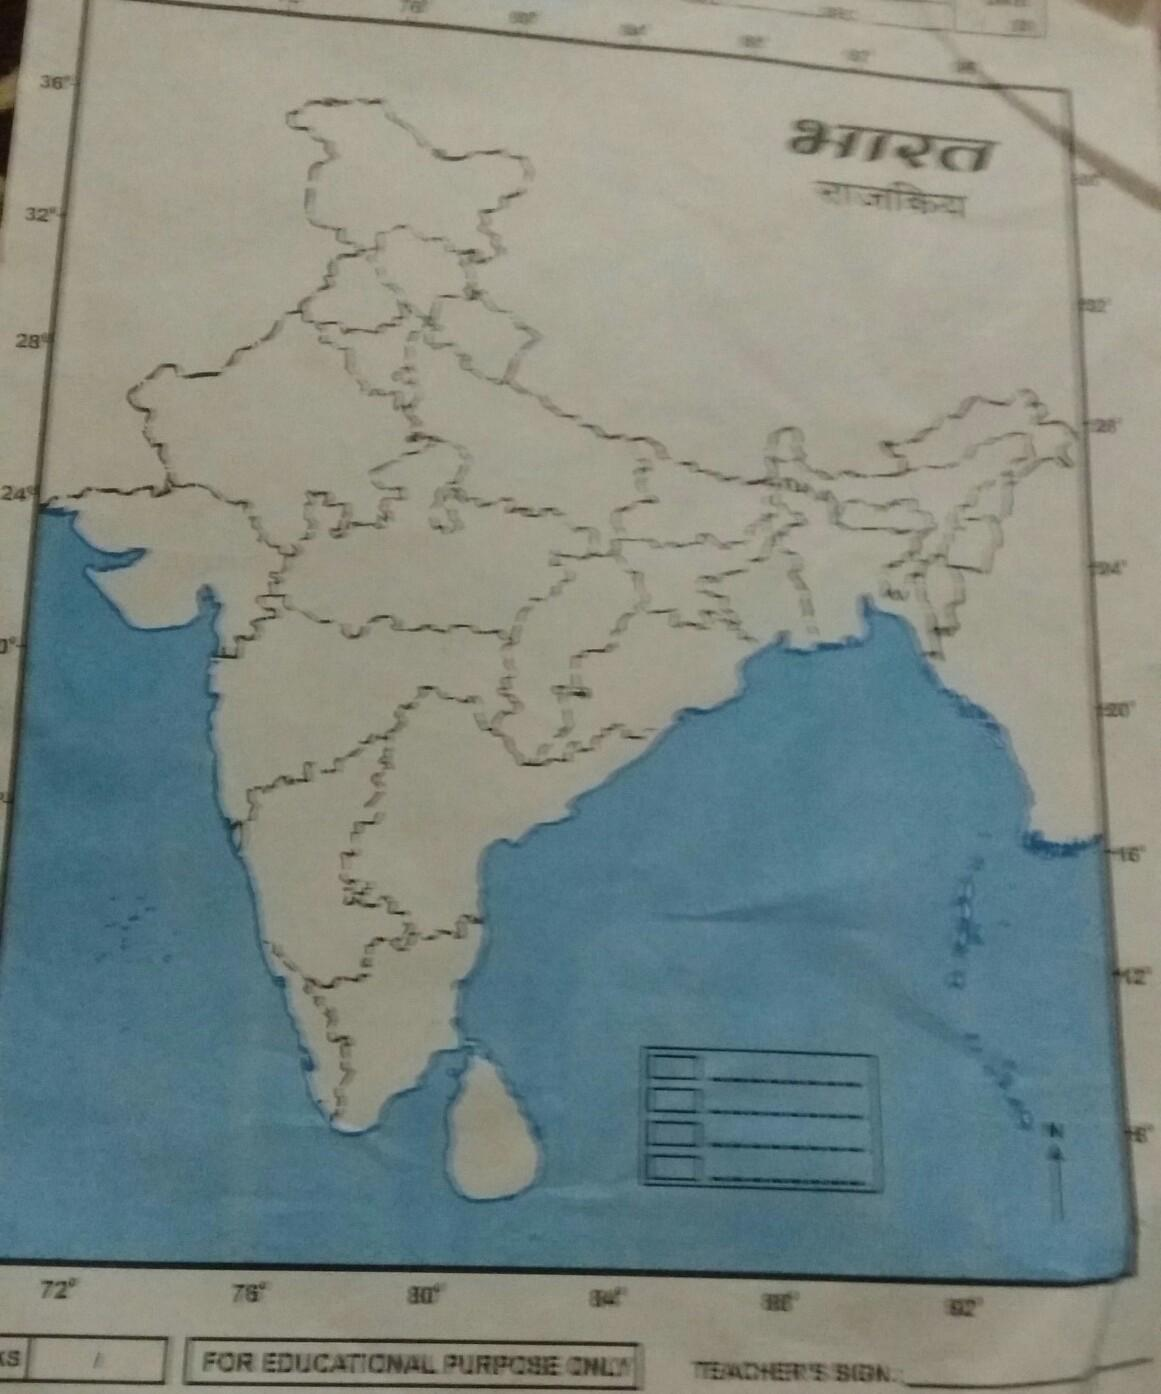 Heyaa !!!..I have provided u one pic of outline map of India ... on i need an eraser, i need sunscreen, i need an umbrella, i need text, i need an essay, i need lunch, i need address, i need phone numbers, i need camera, i need water, i need an id, i need transportation, us postal code map, i need contacts, bank of america map, i need fire, i need history, i need hours, i need some money, i need directions,